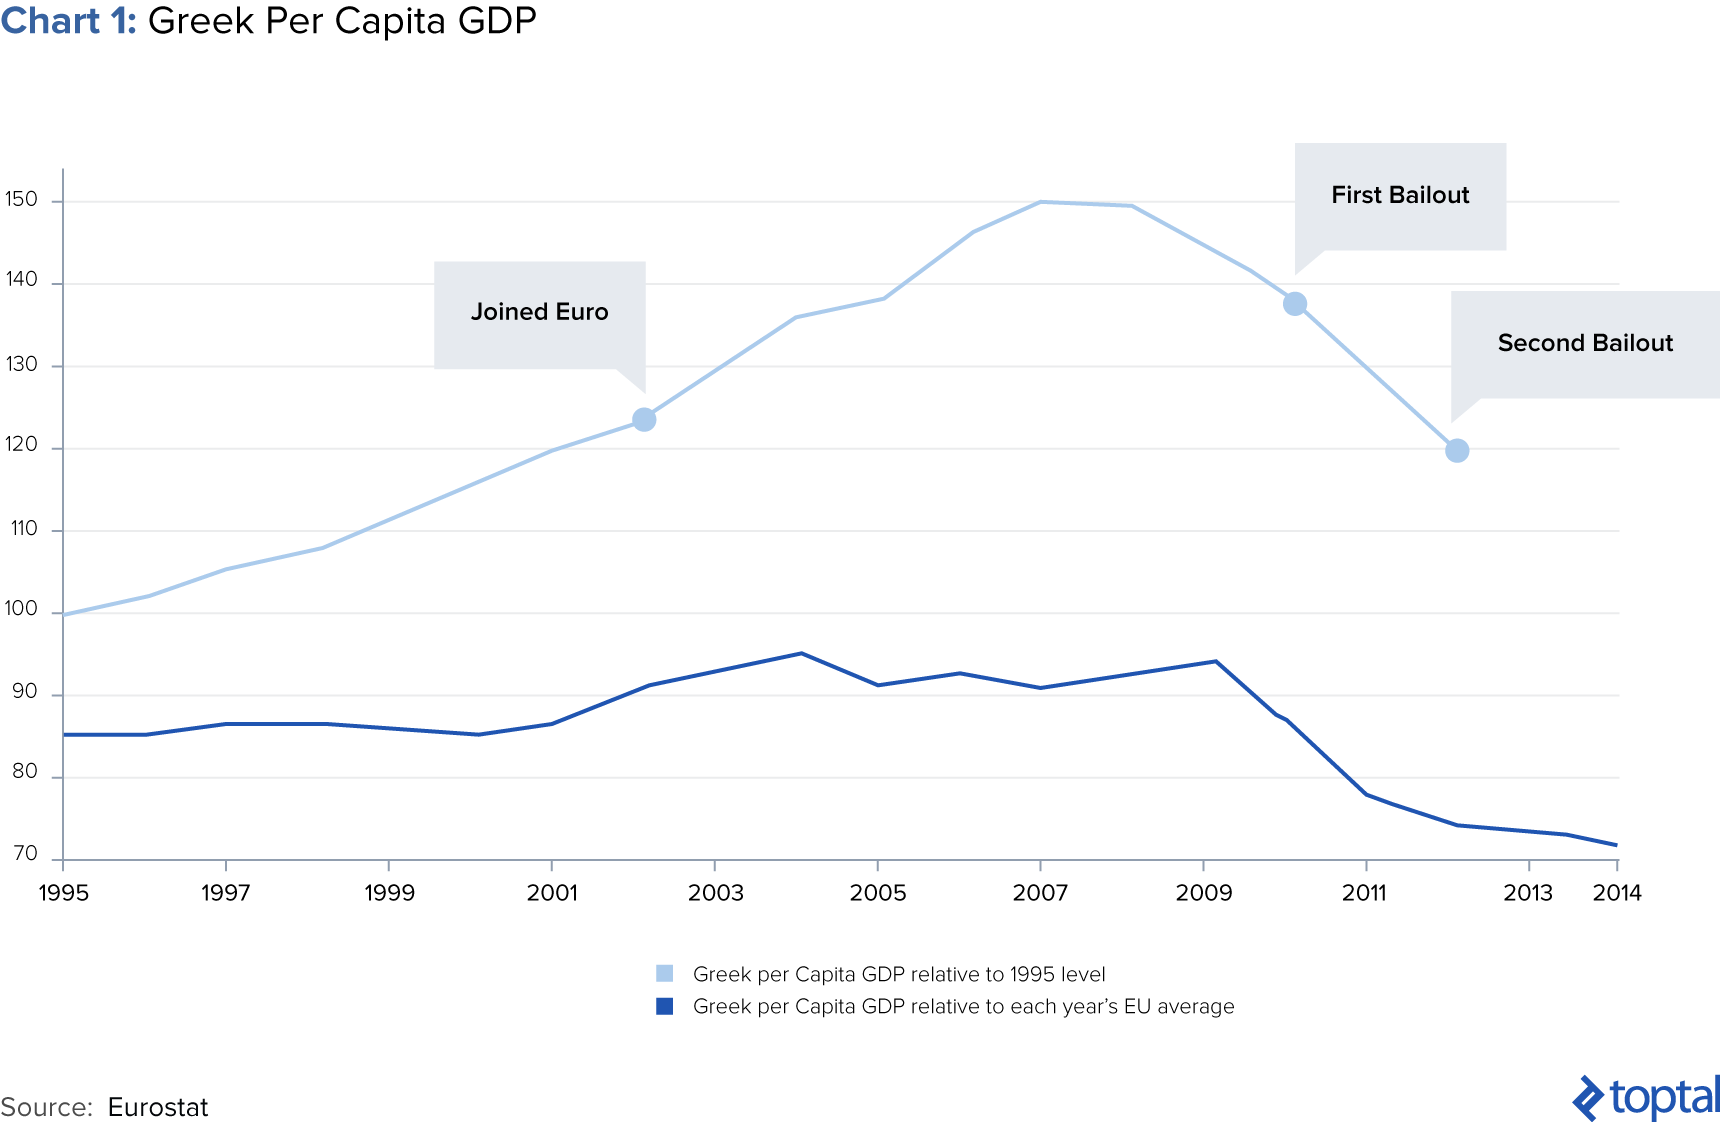 Chart 1: Greek Per Capita GDP